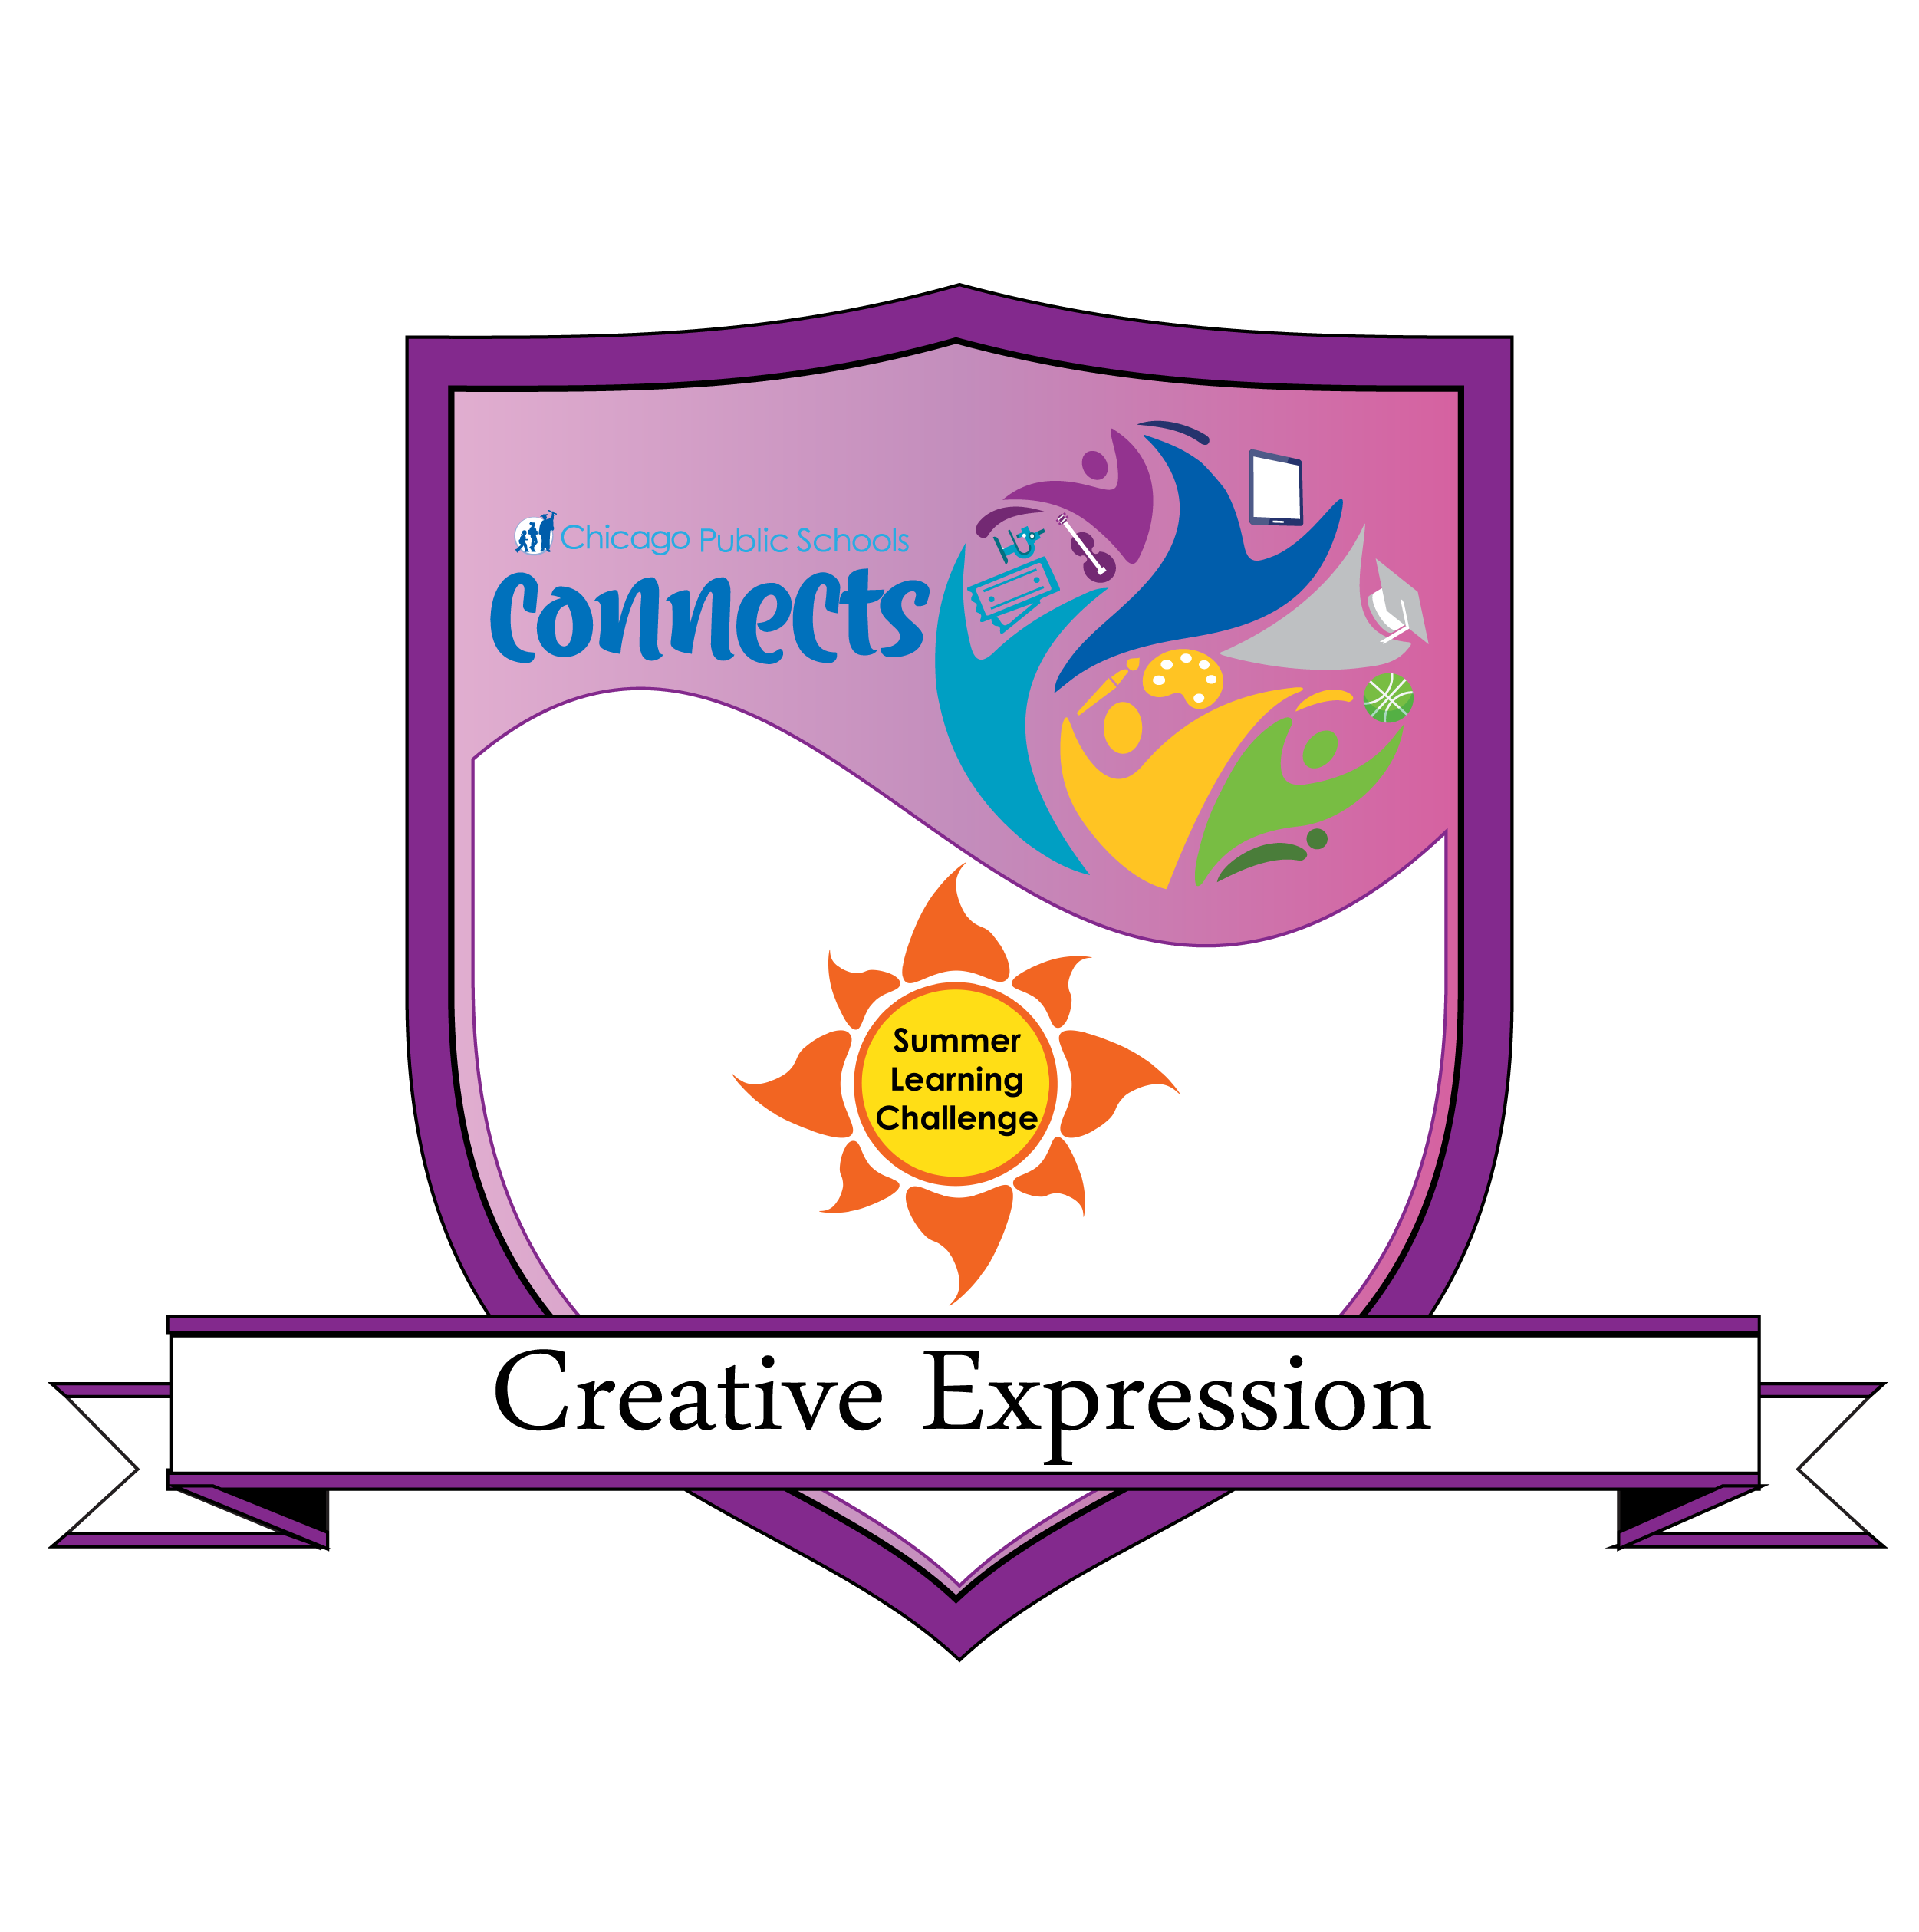 CPS Connects: Creative Expression Playlist